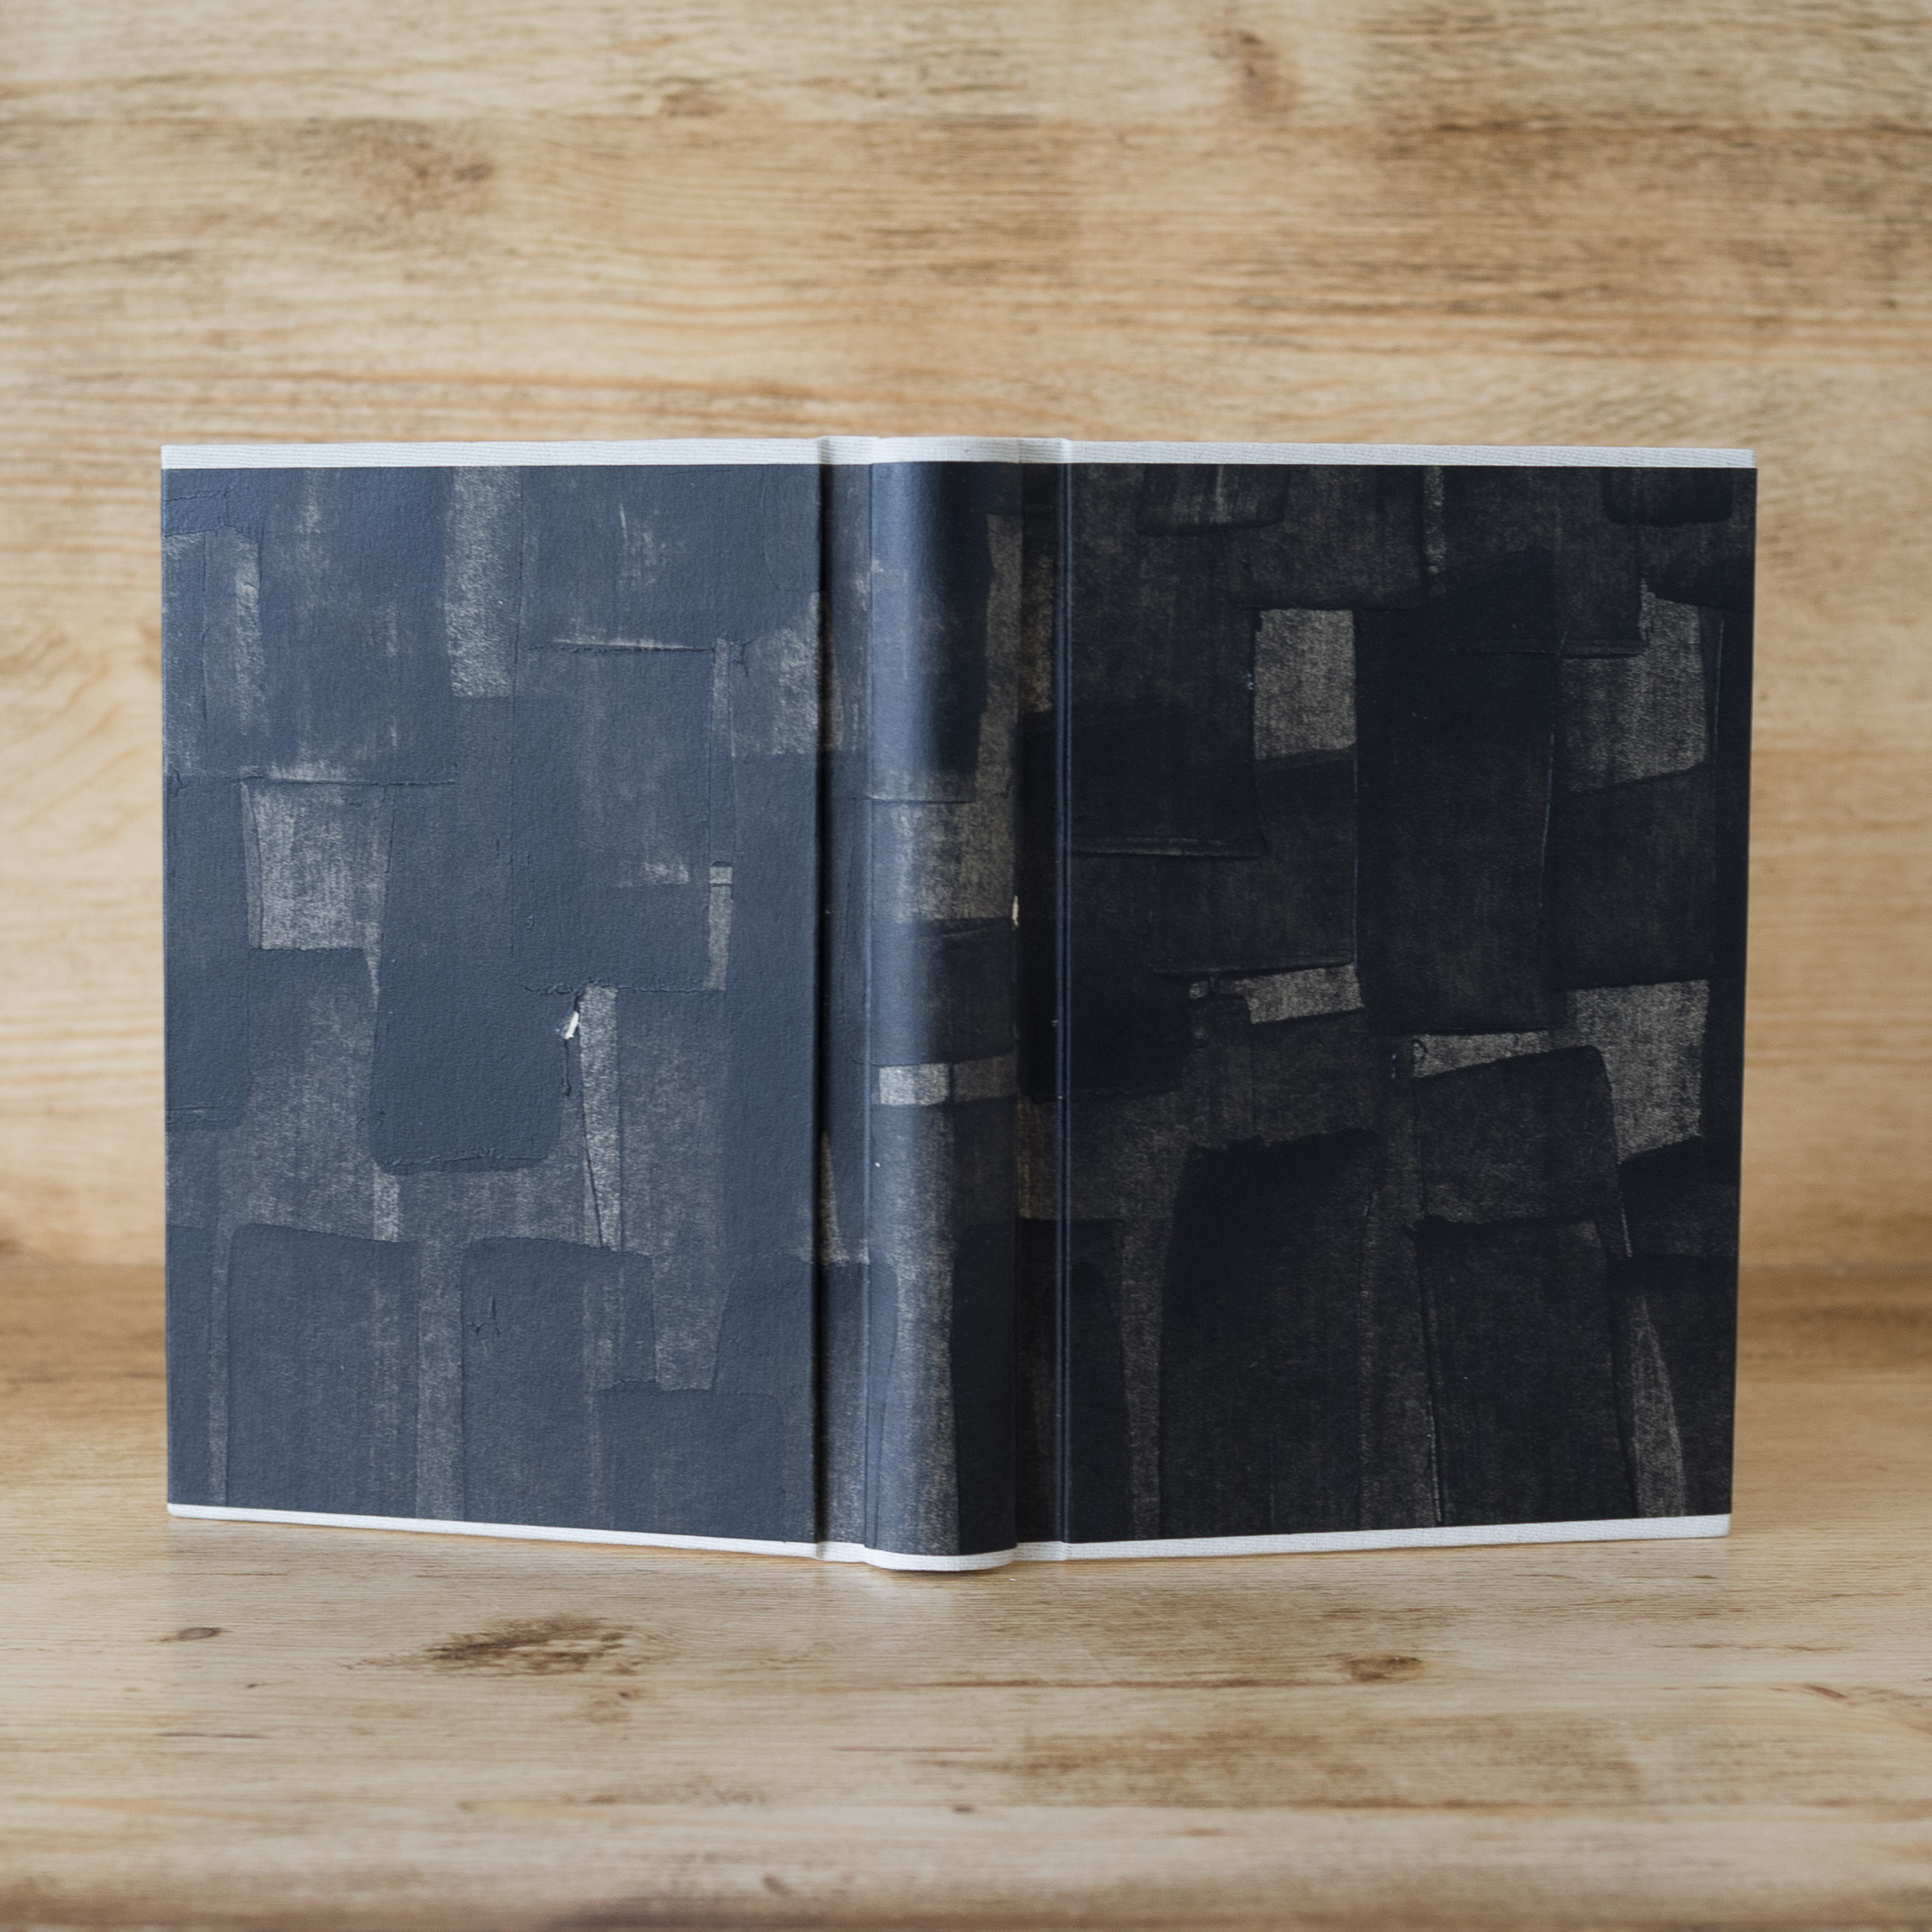 paste paper covers